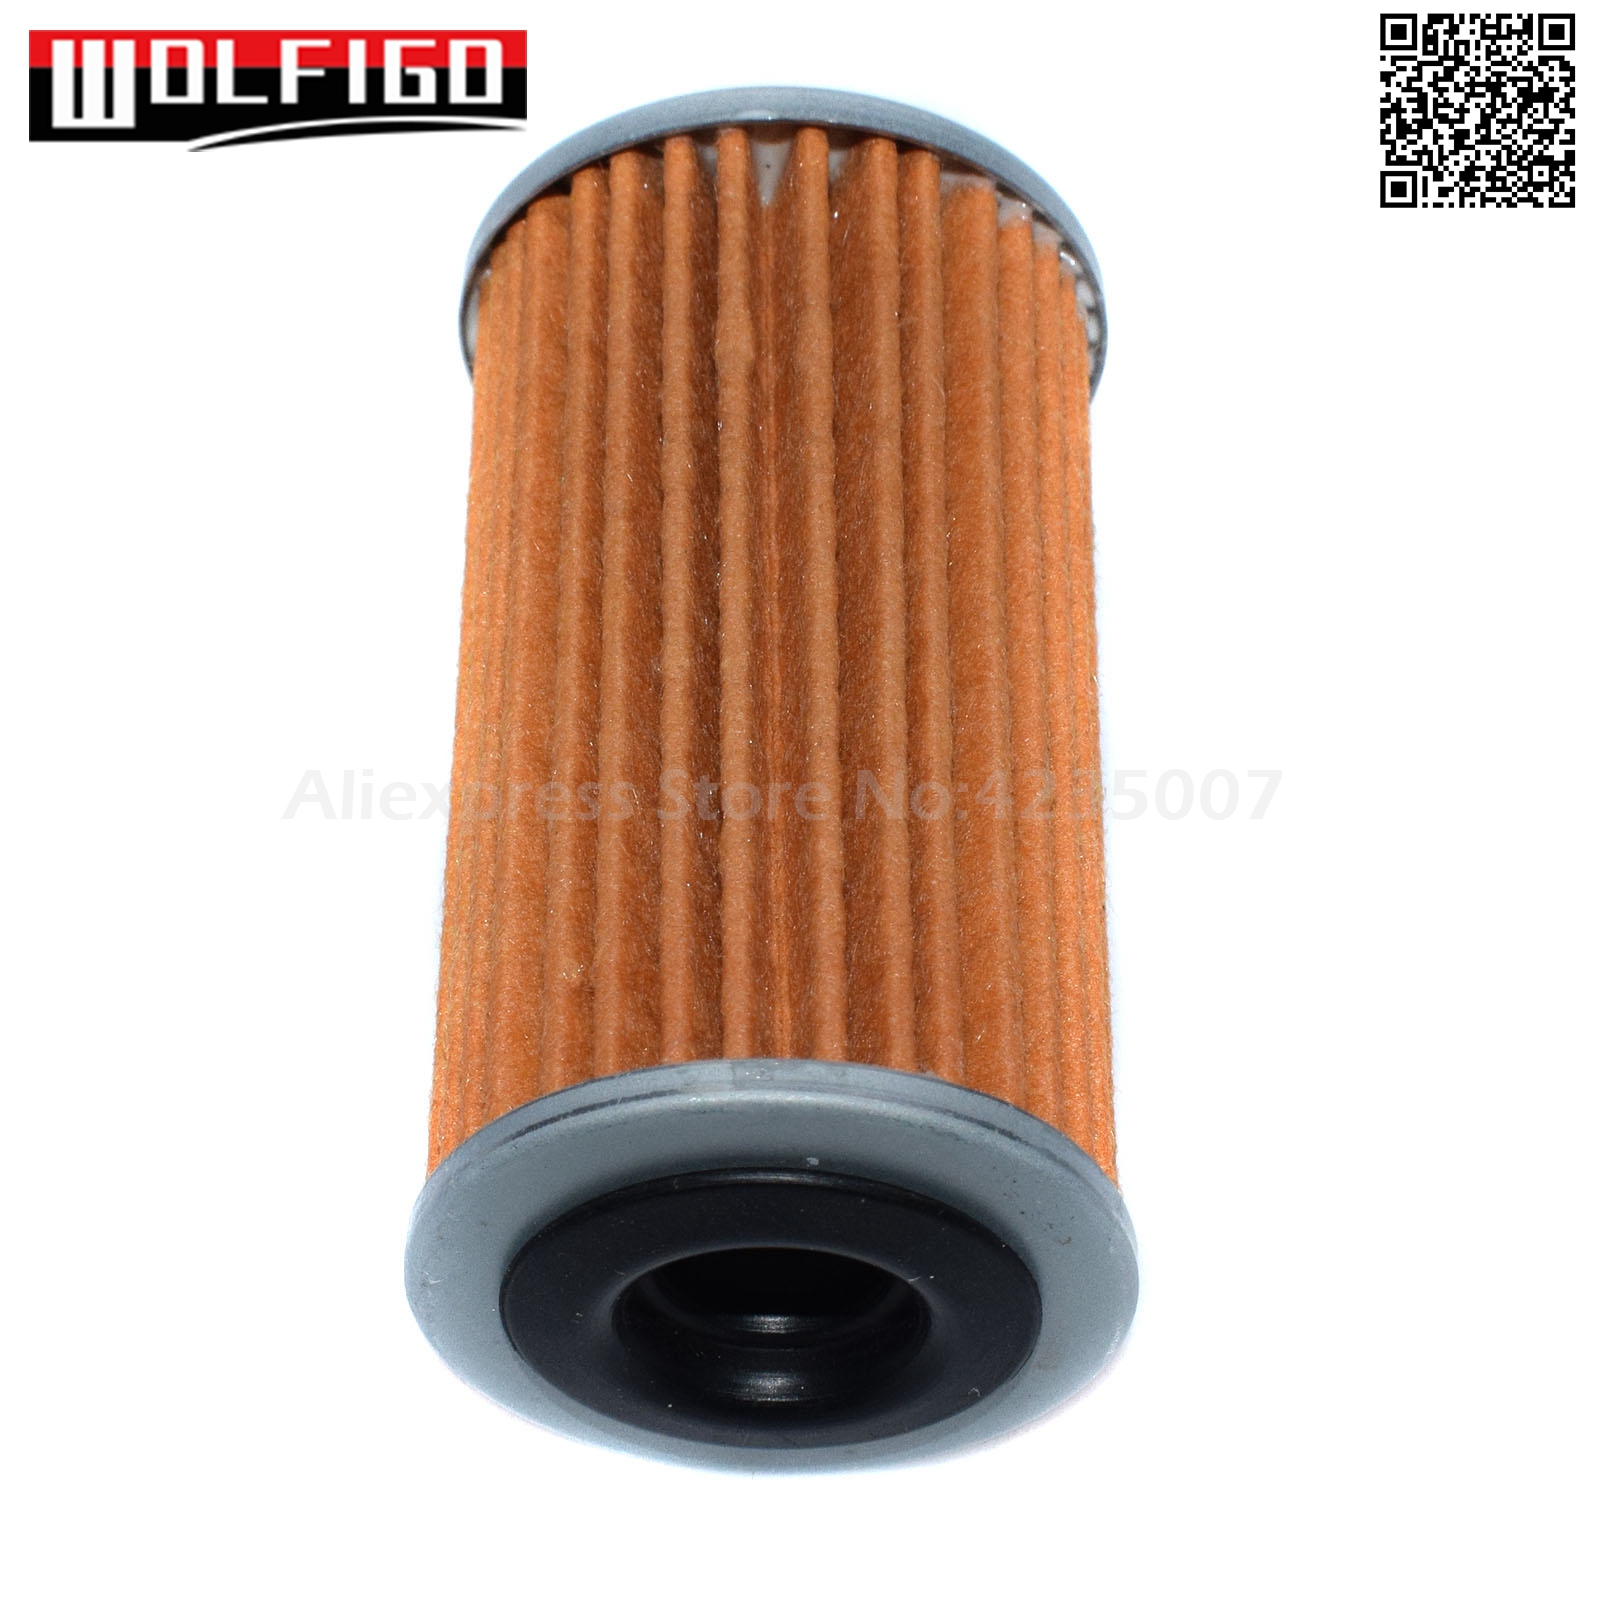 Koauto New 31728-3JX0C RE0F11A JF015E Transmission Oil Filter for Nissan Sentra Versa